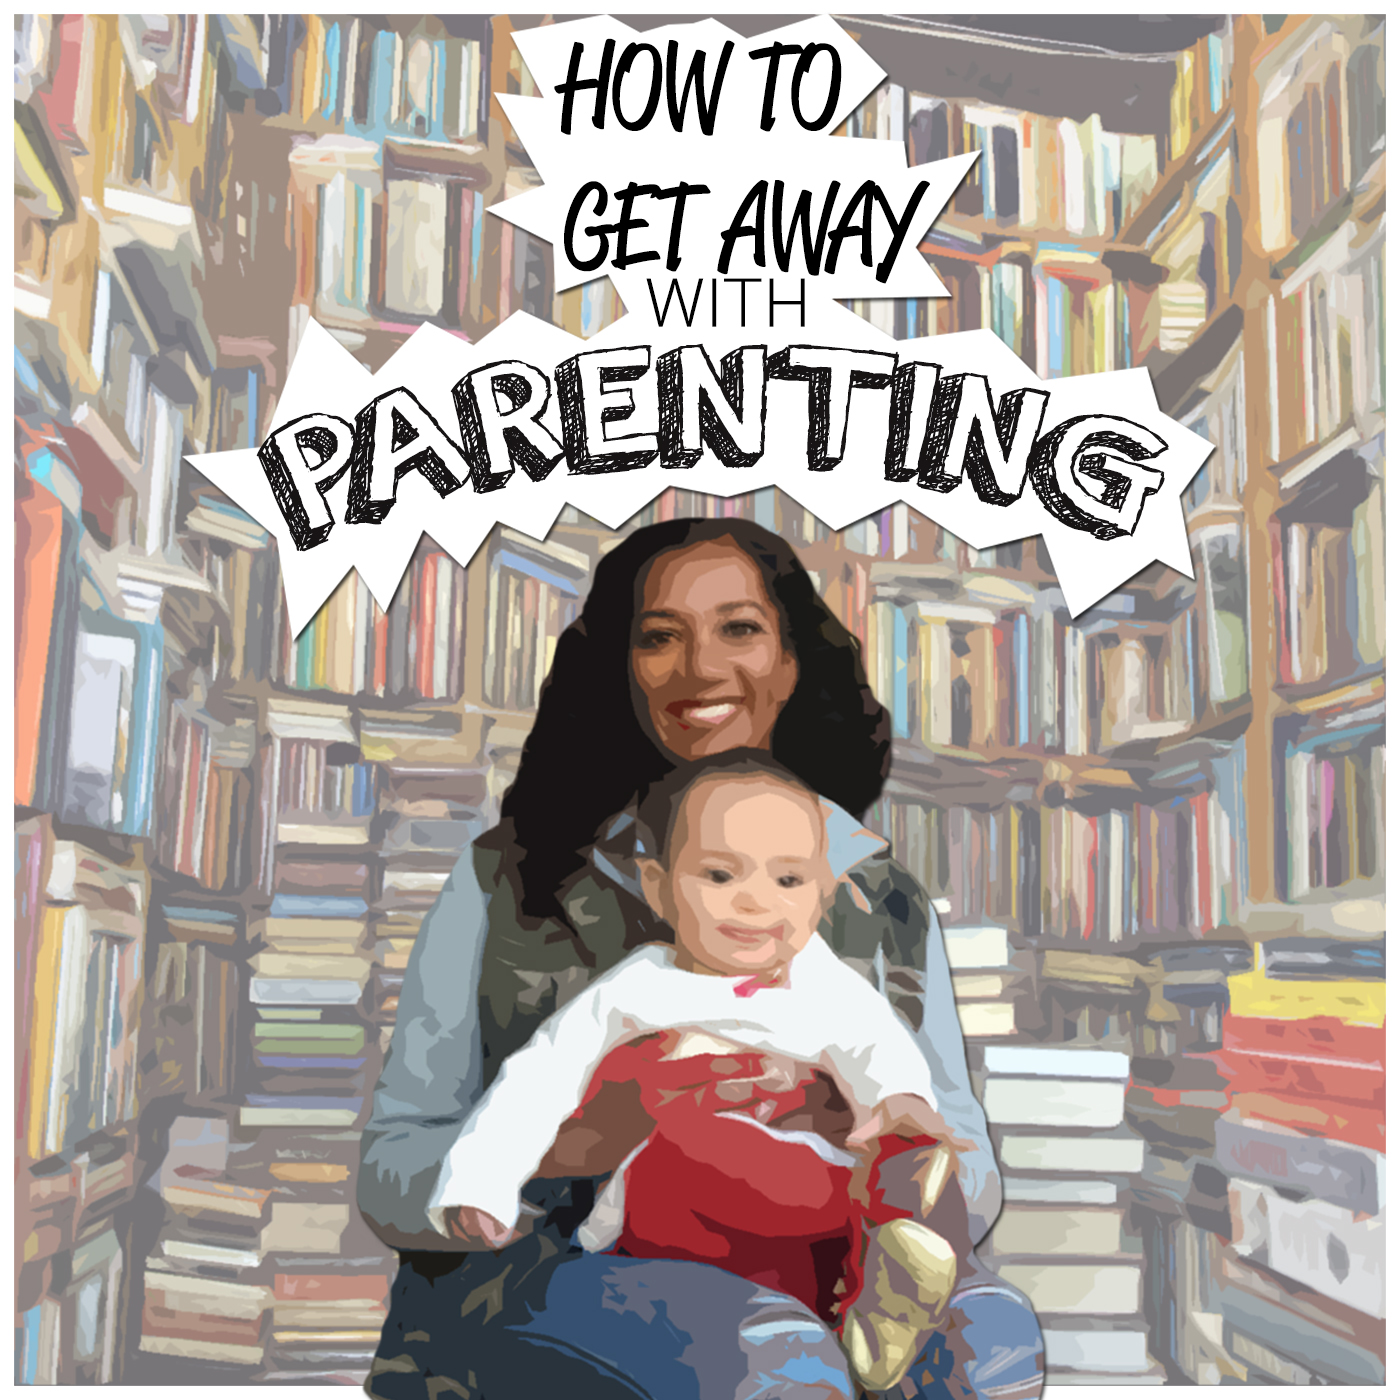 How To Get Away With Parenting